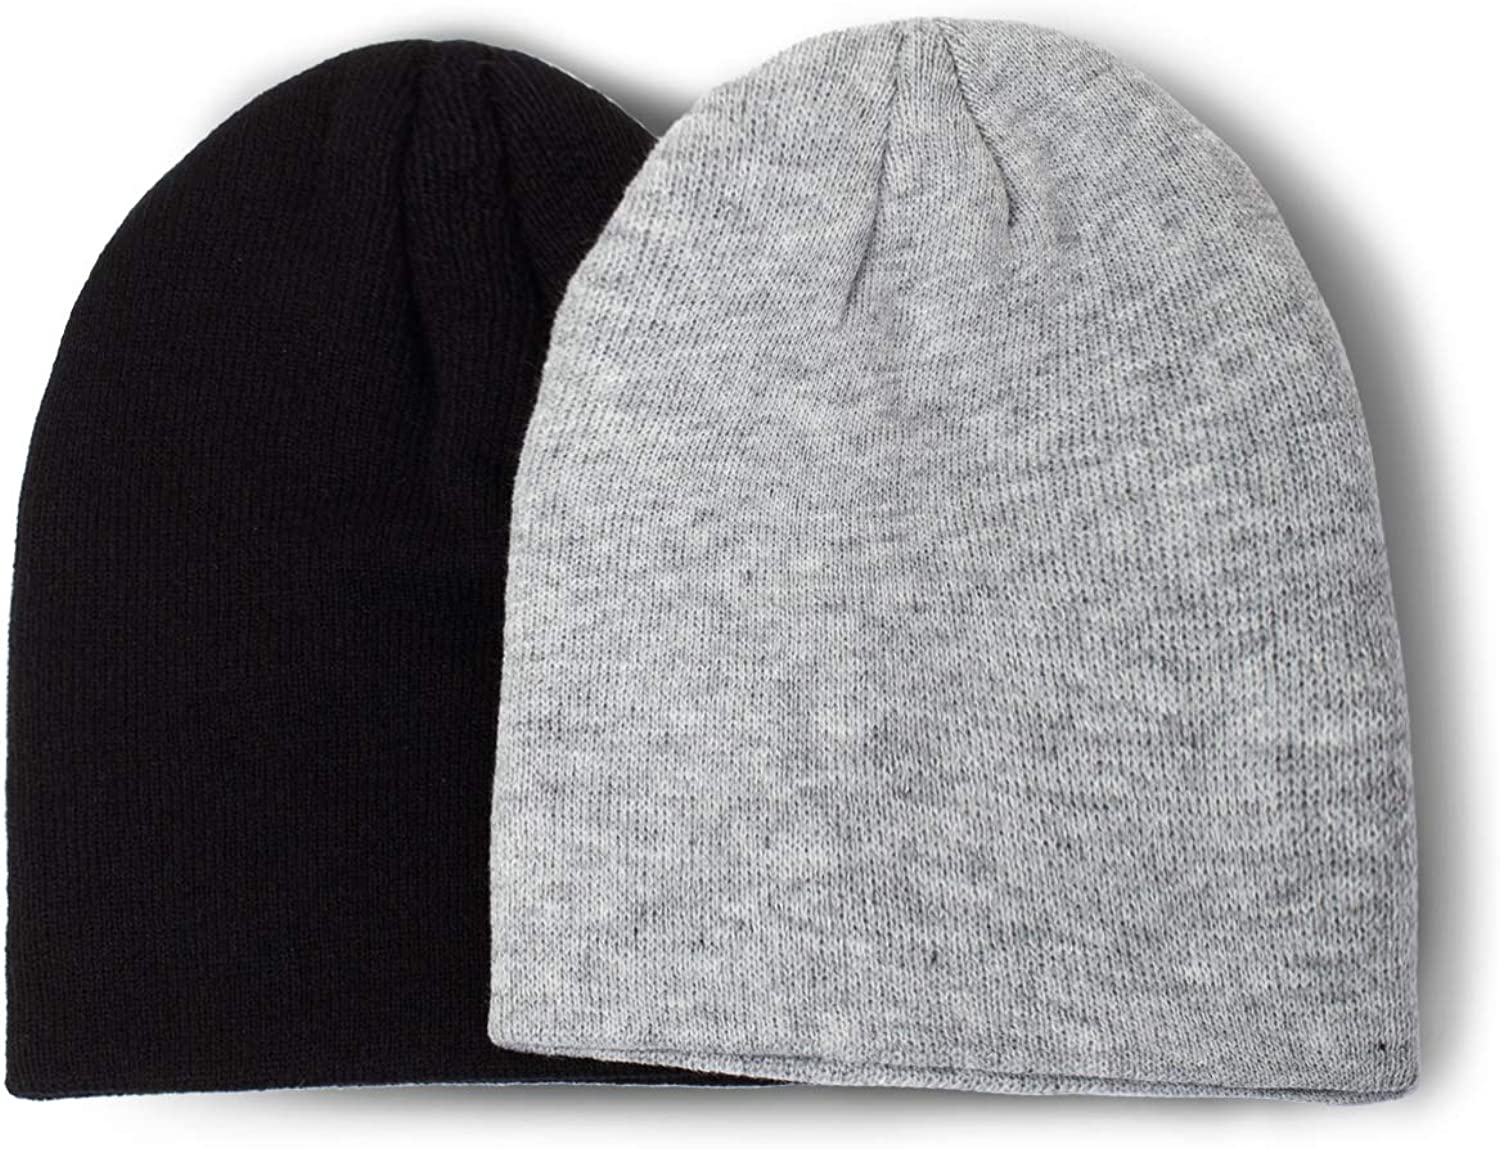 MixMatchy Womens 2-Pack Casual Winter Acrylic Knit Beanie for Men and Women